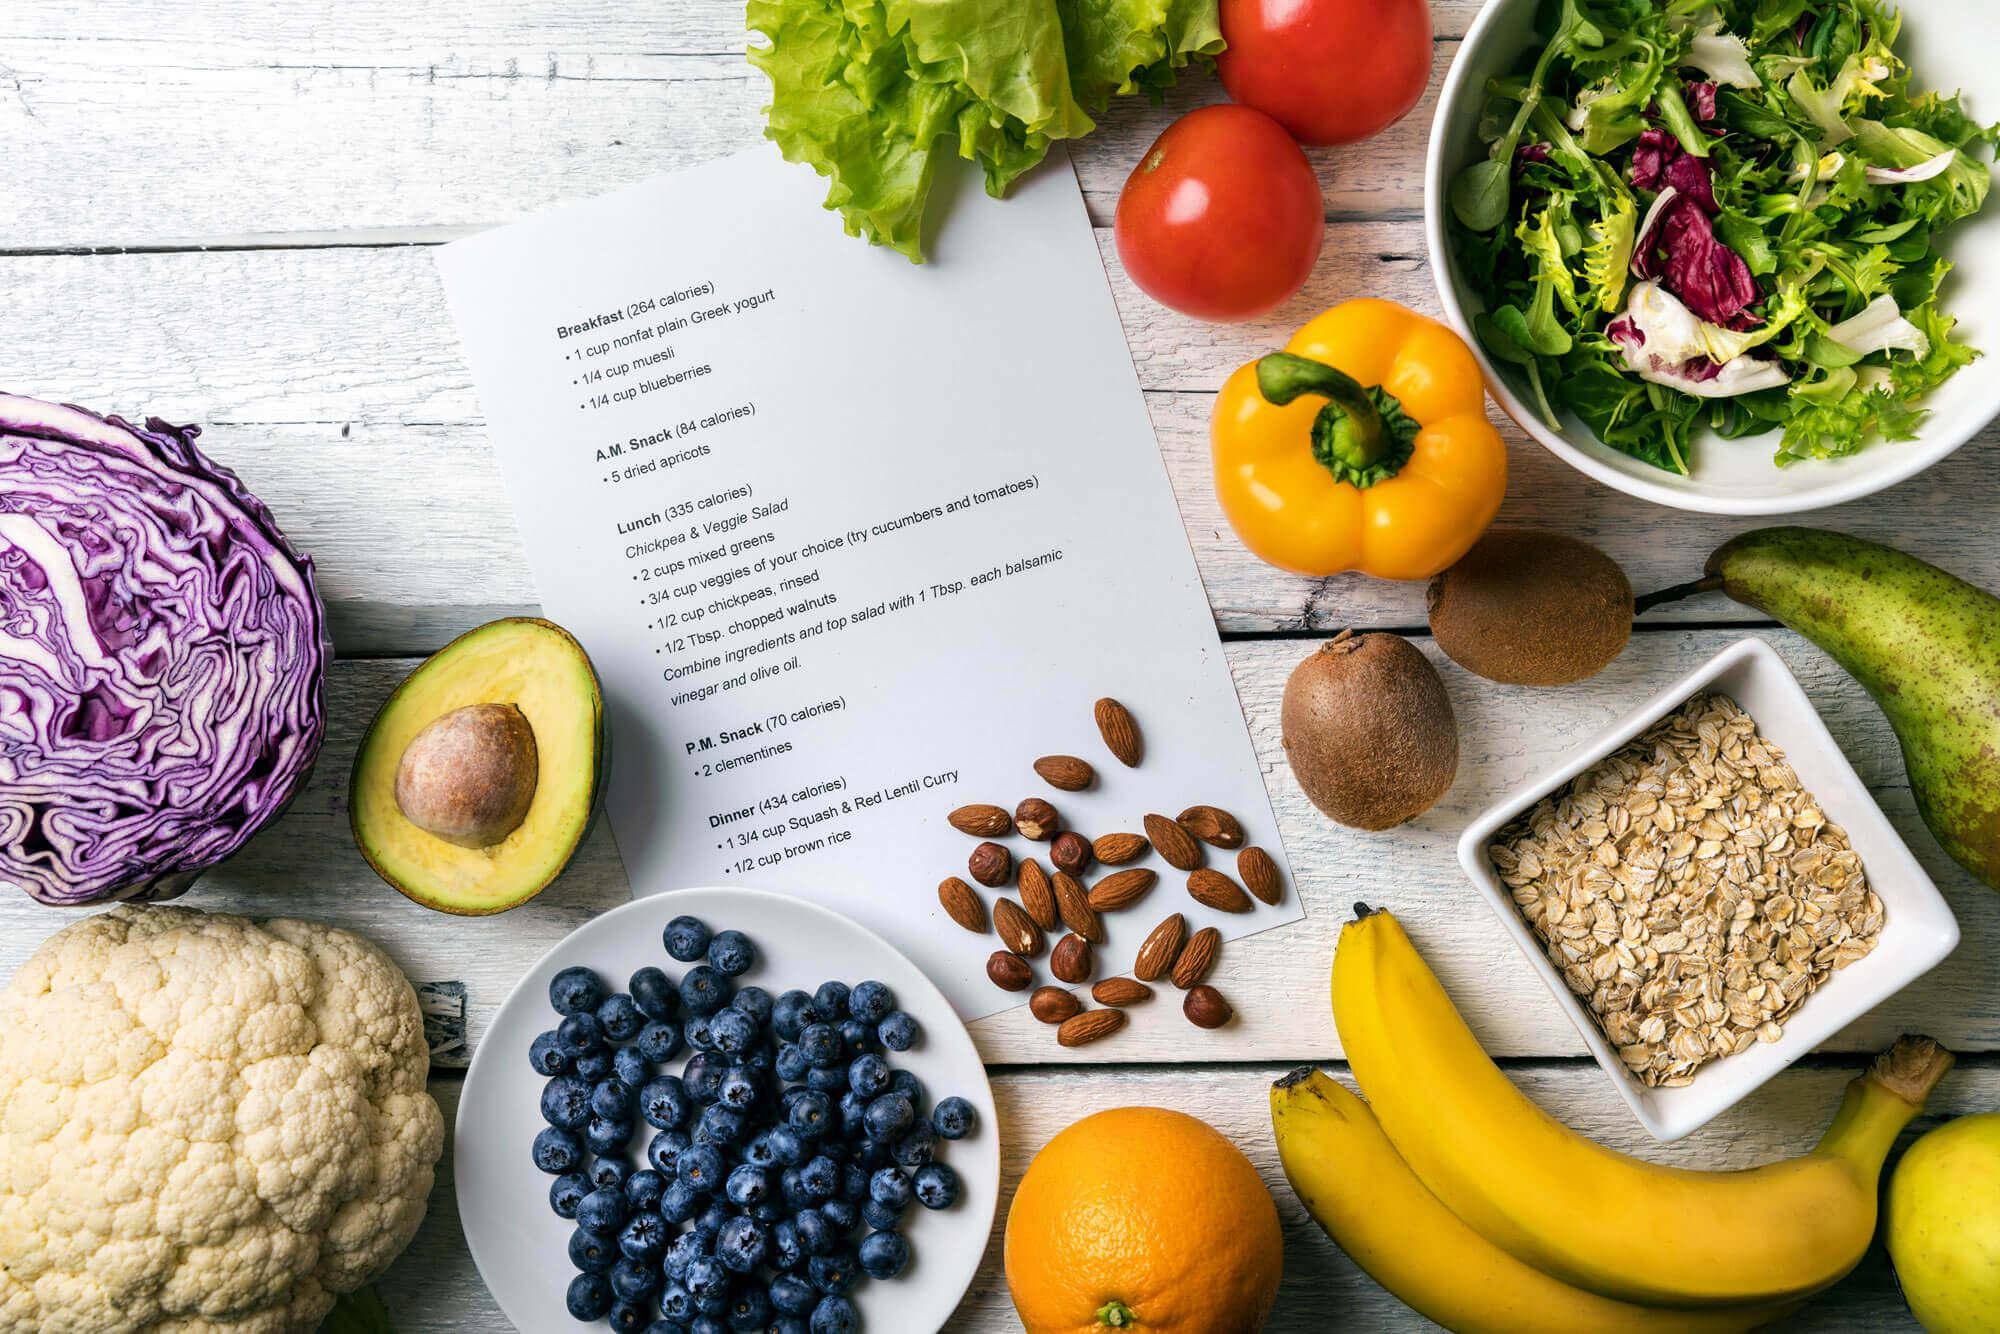 Nutrition counseling and testing with licensed dietitian nutritionists near me